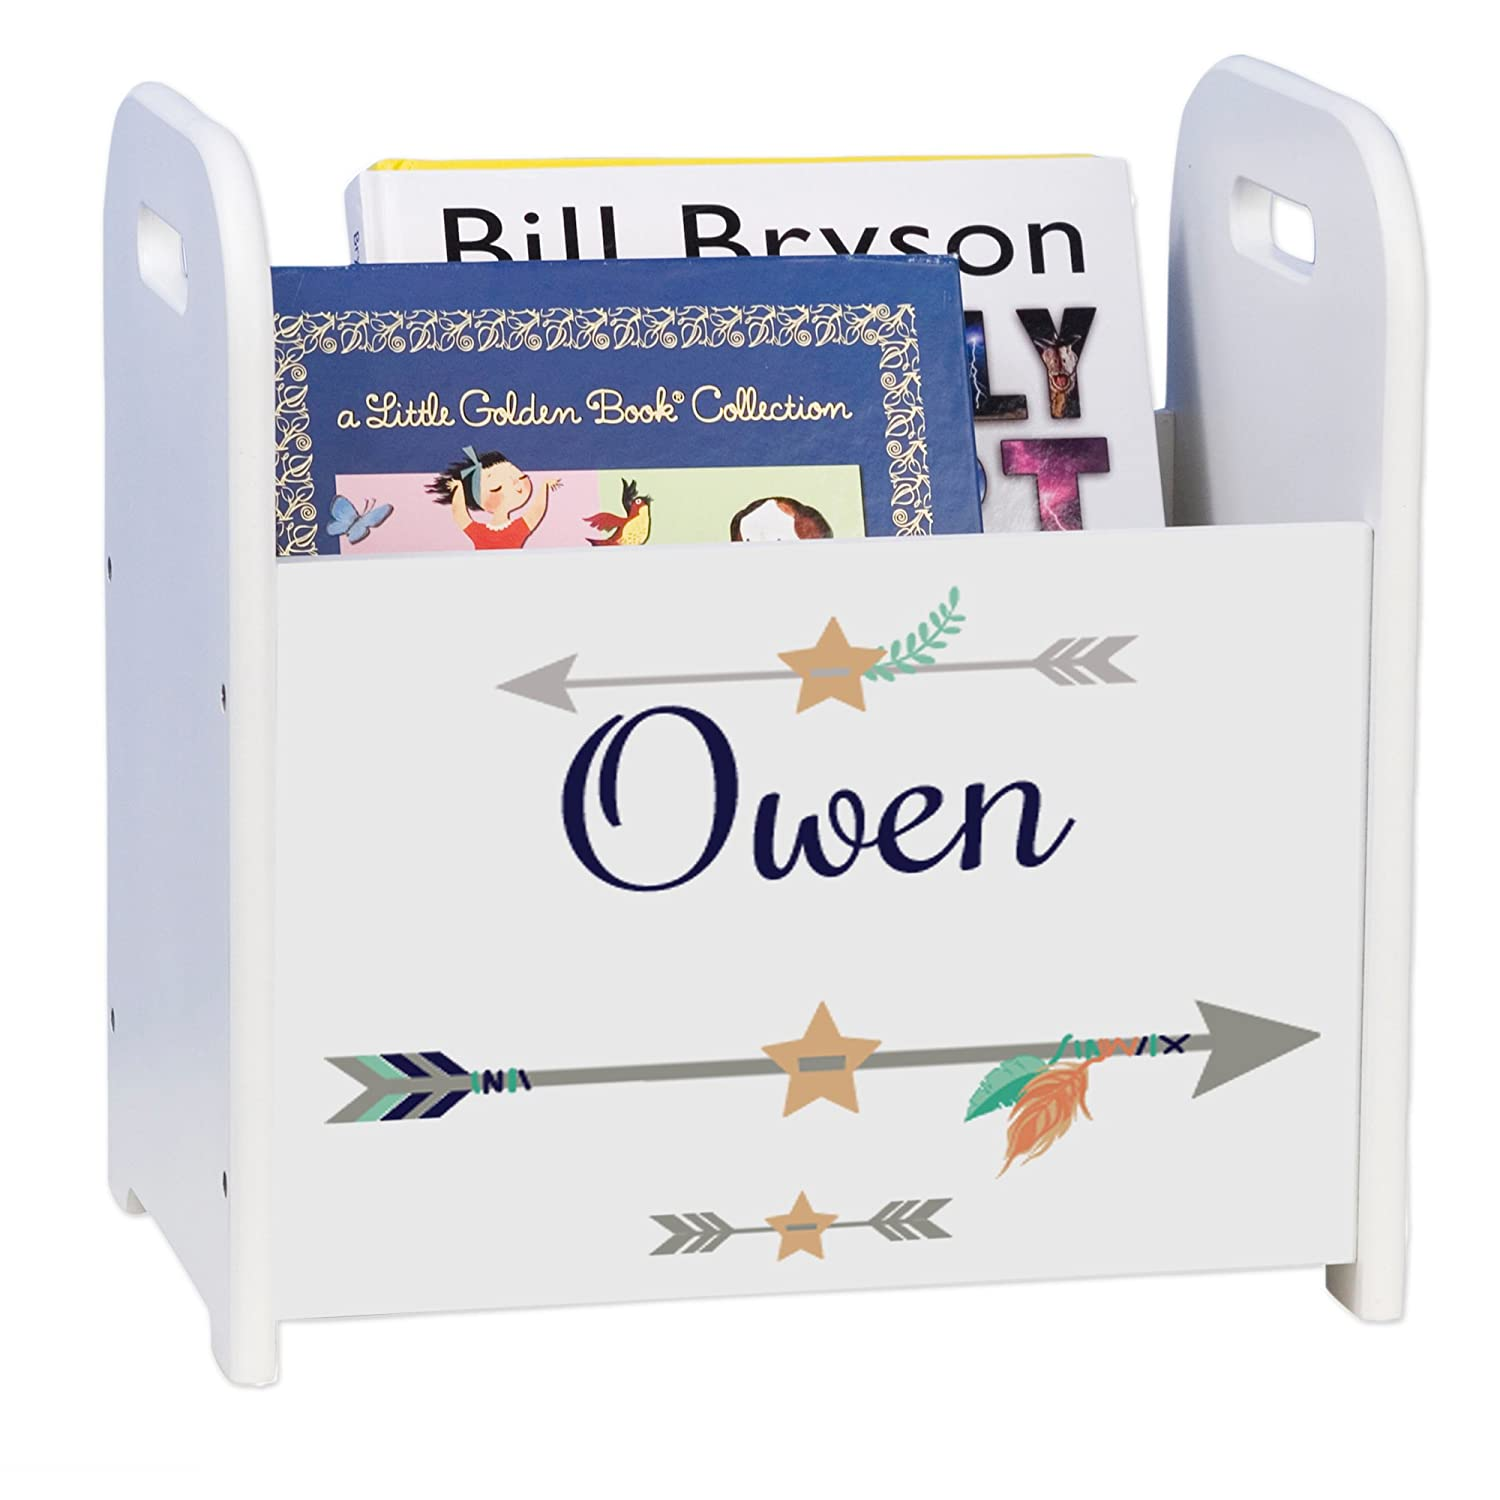 Special sale item Personalized List price Tribal Arrows boy White Book Rack and Caddy